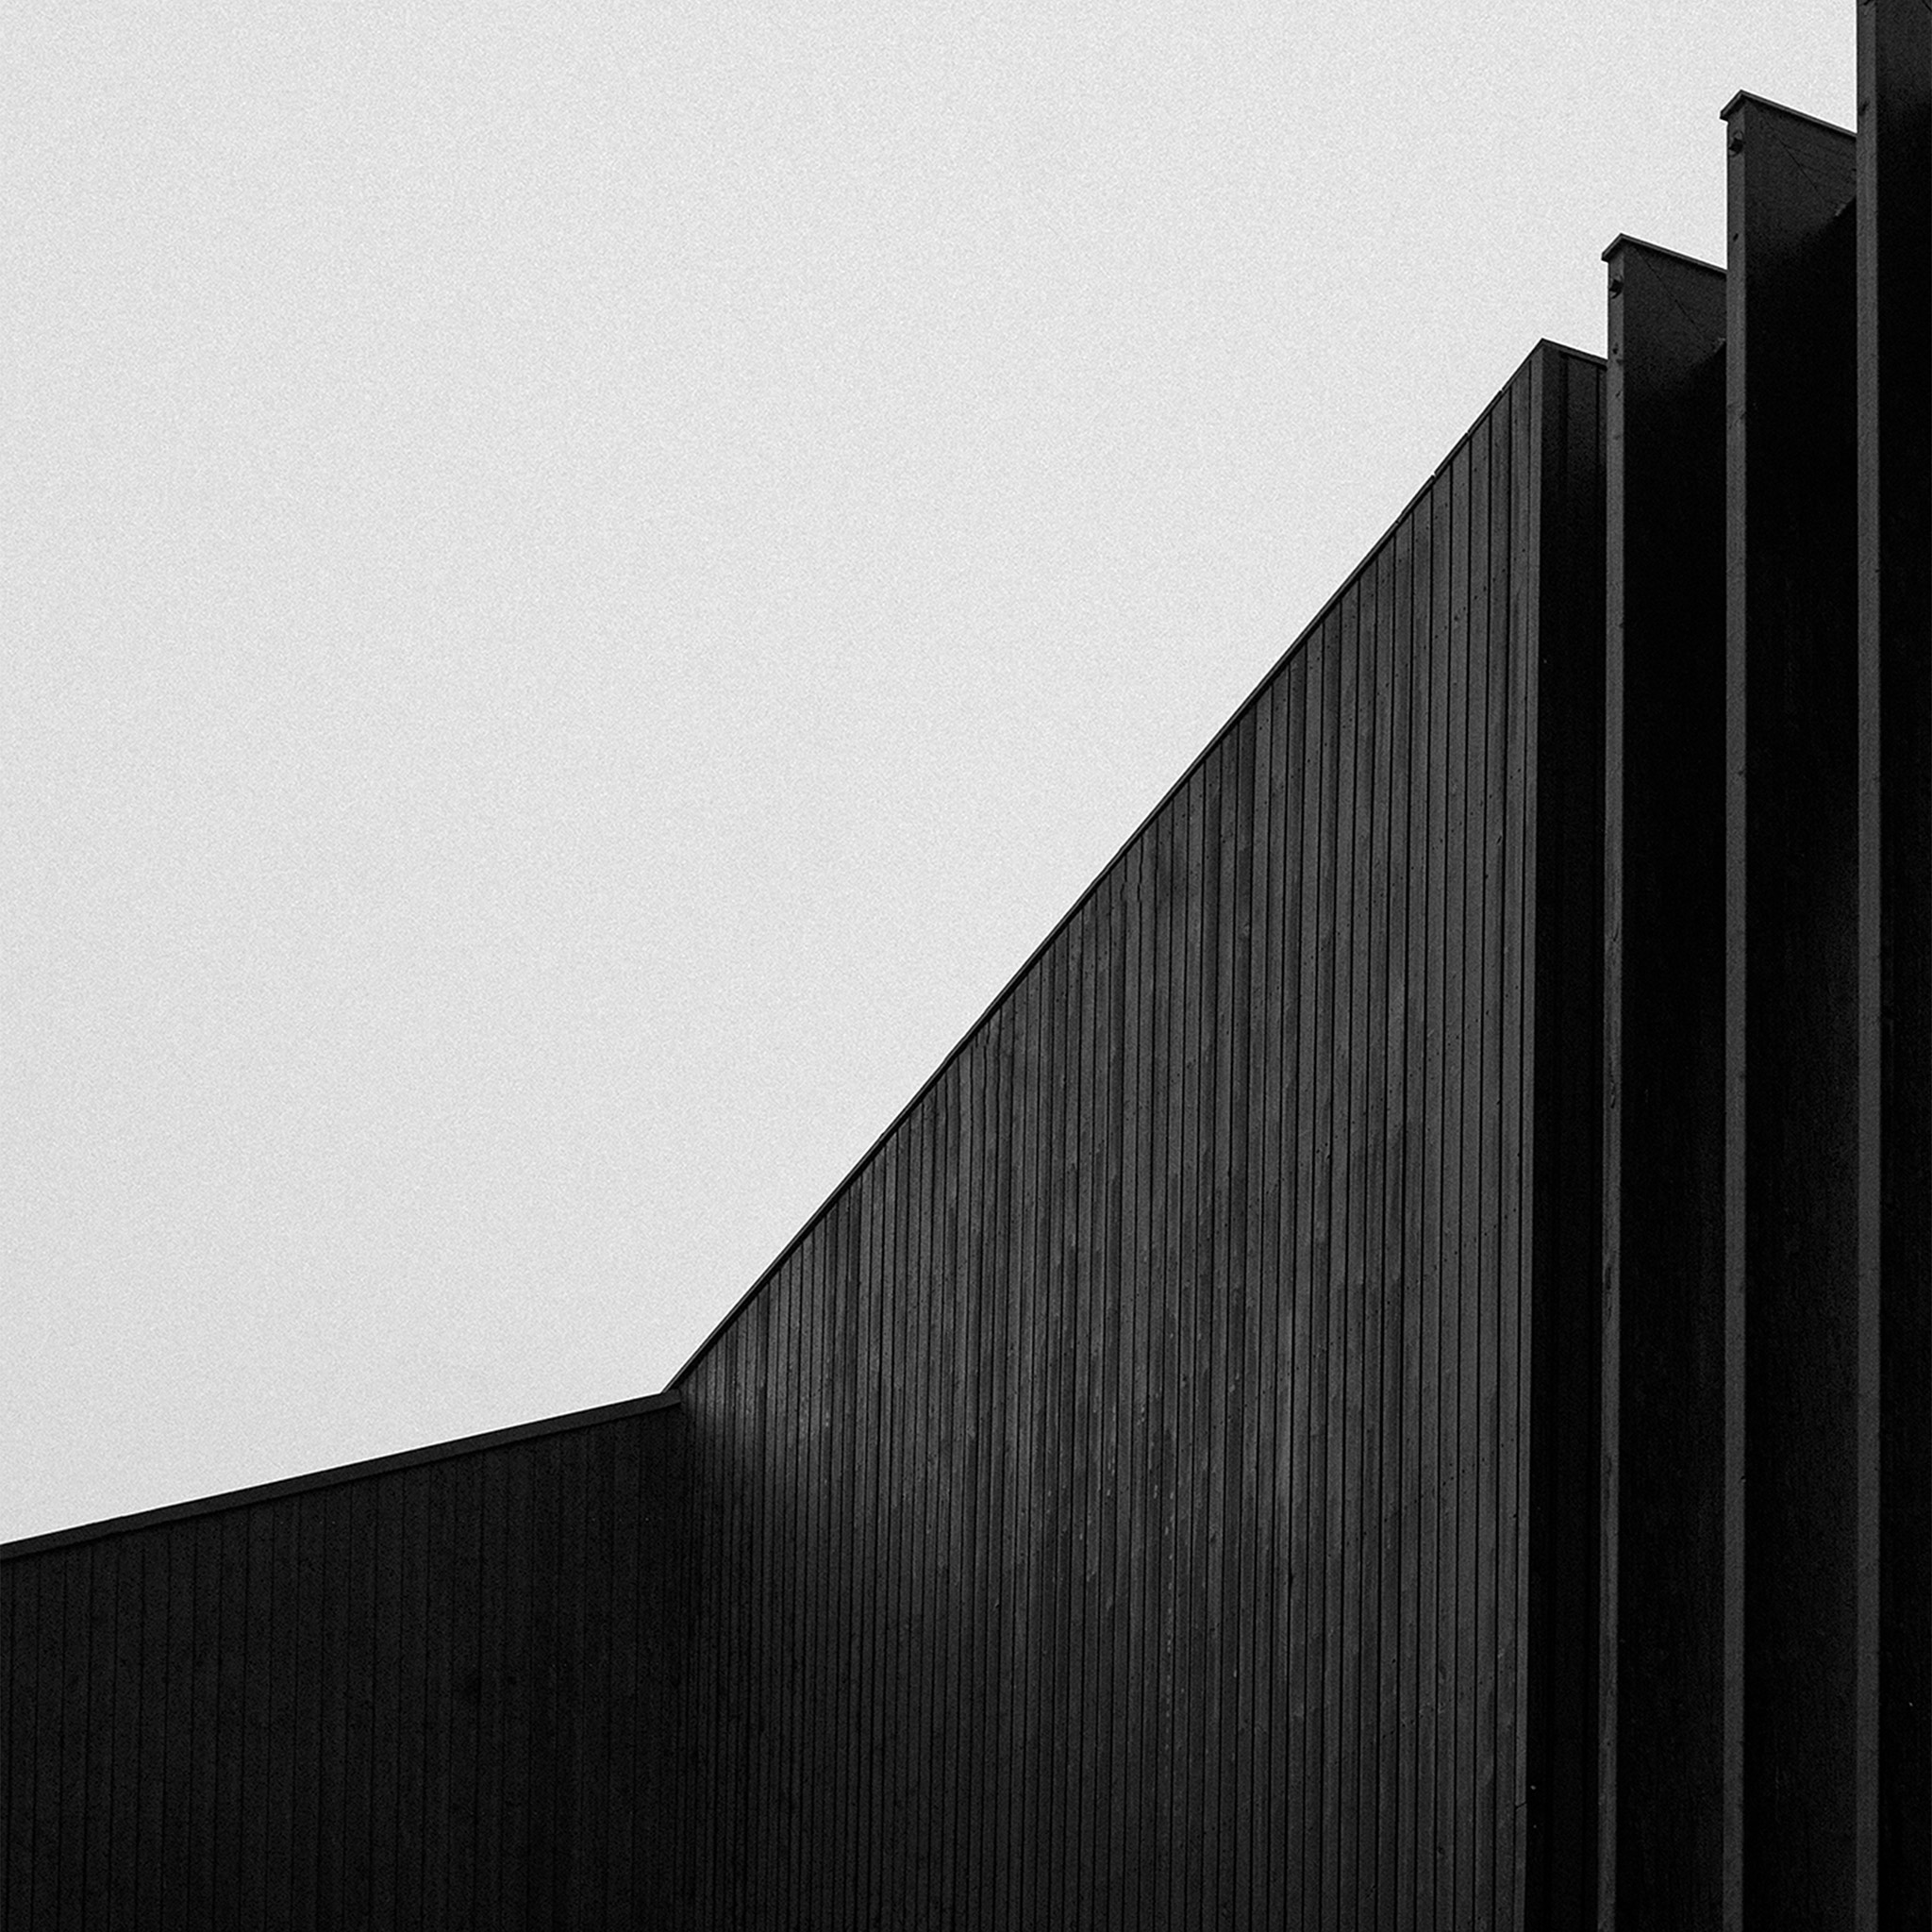 Best Iphone X Wallpapers: Vz02-simple-wall-bw-dark-pattern-background-wallpaper